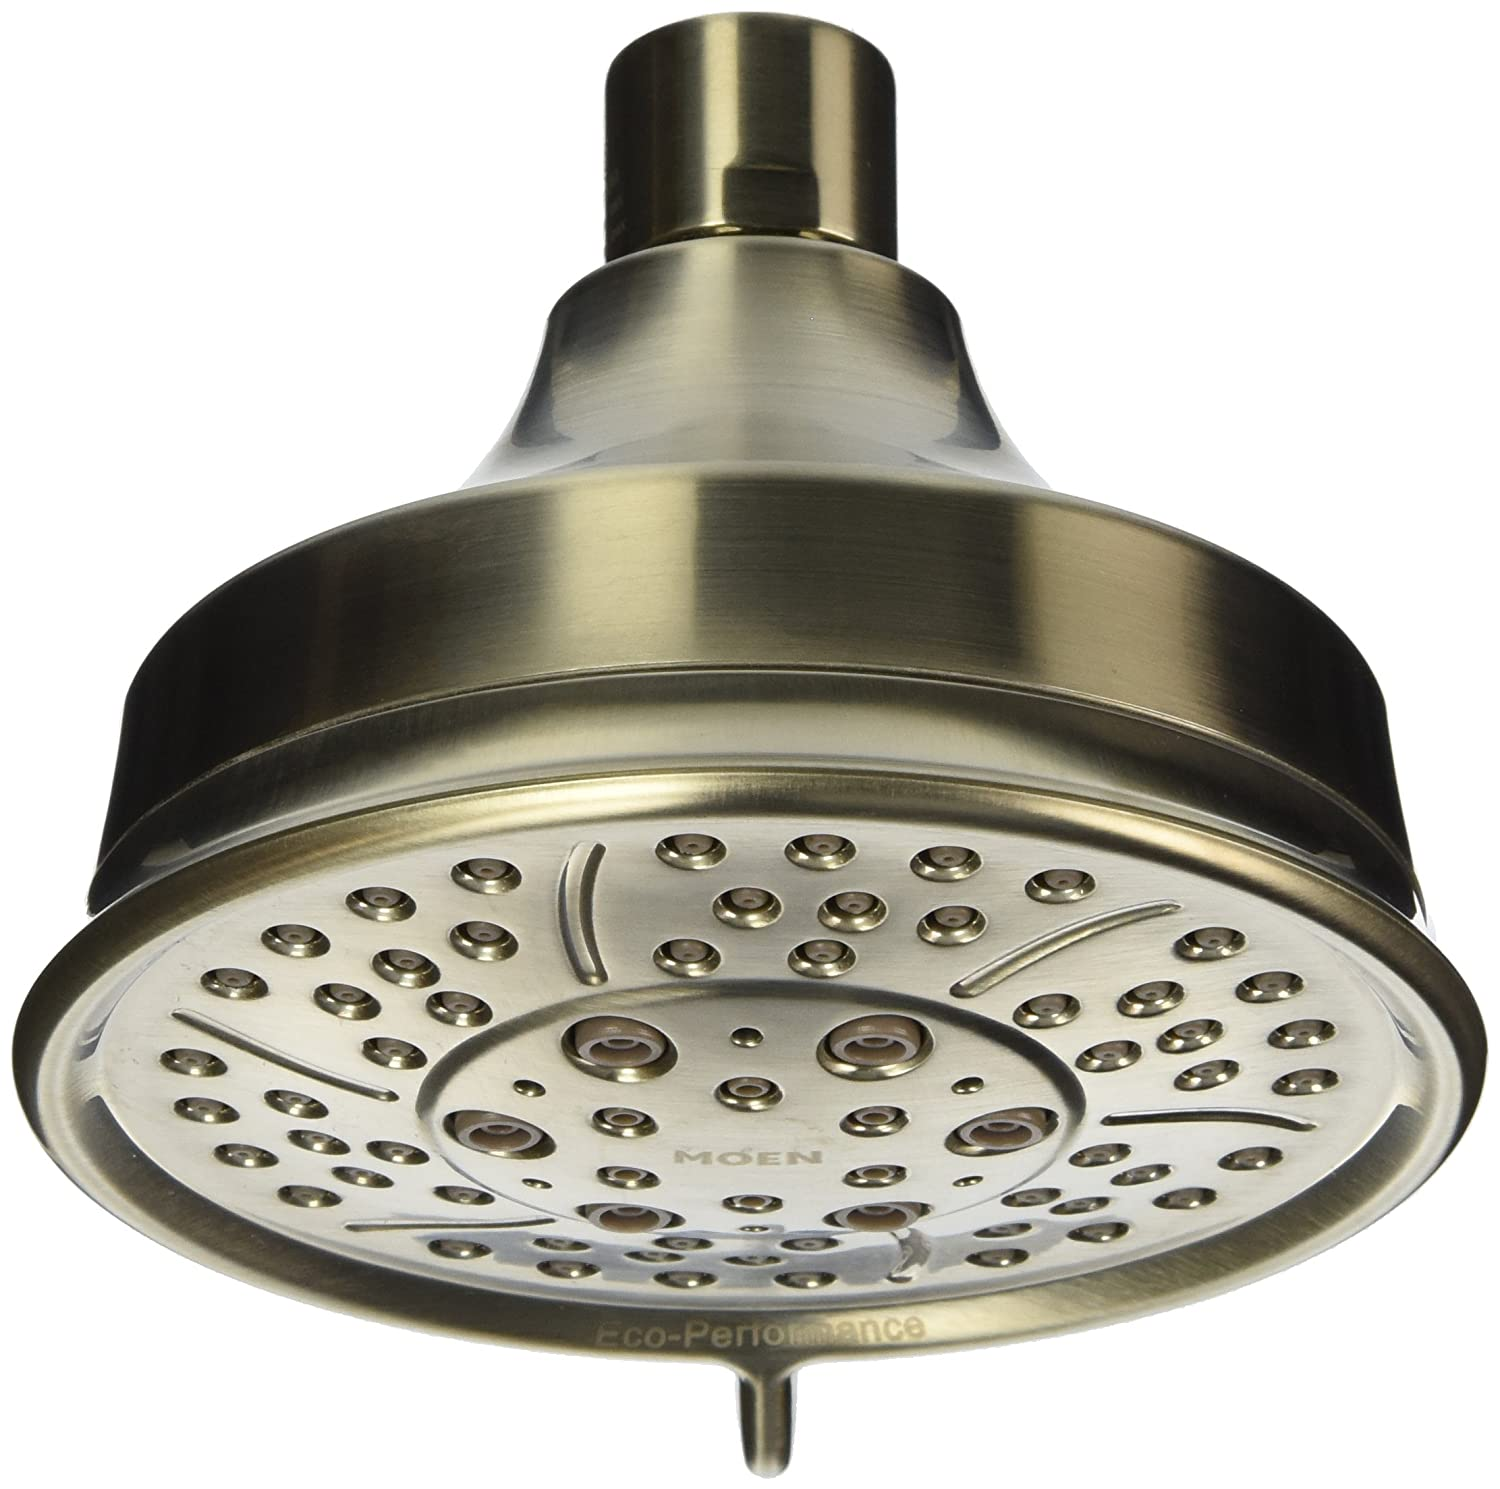 Moen 3638EPBN Four-Function 4-3 8-Inch Diameter Showerhead, Brushed Nickel